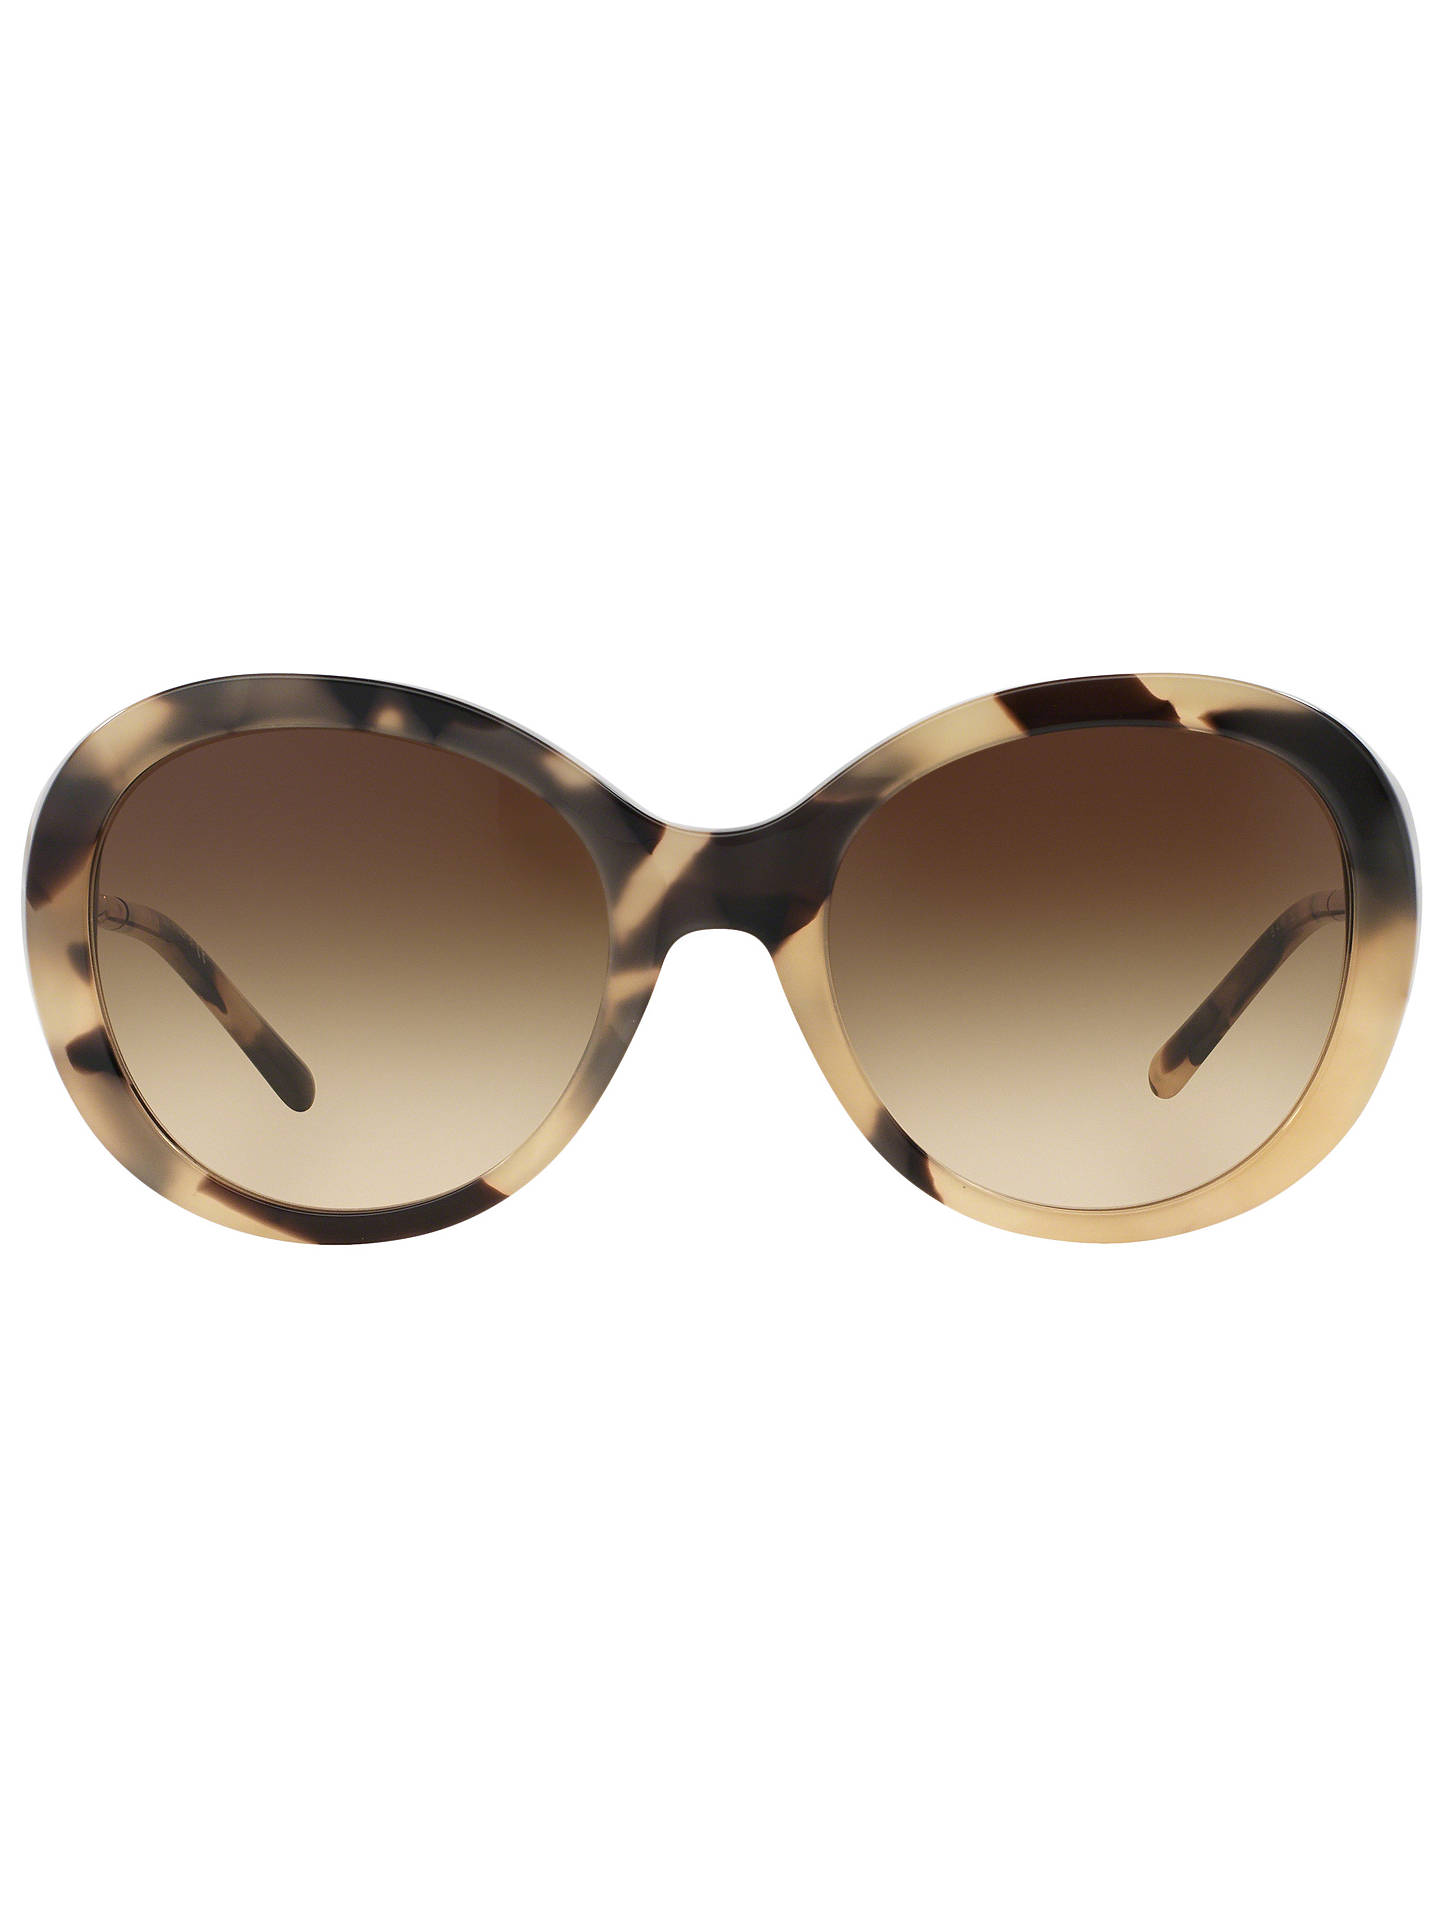 Burberry BE4191 Round Sunglasses, Brown